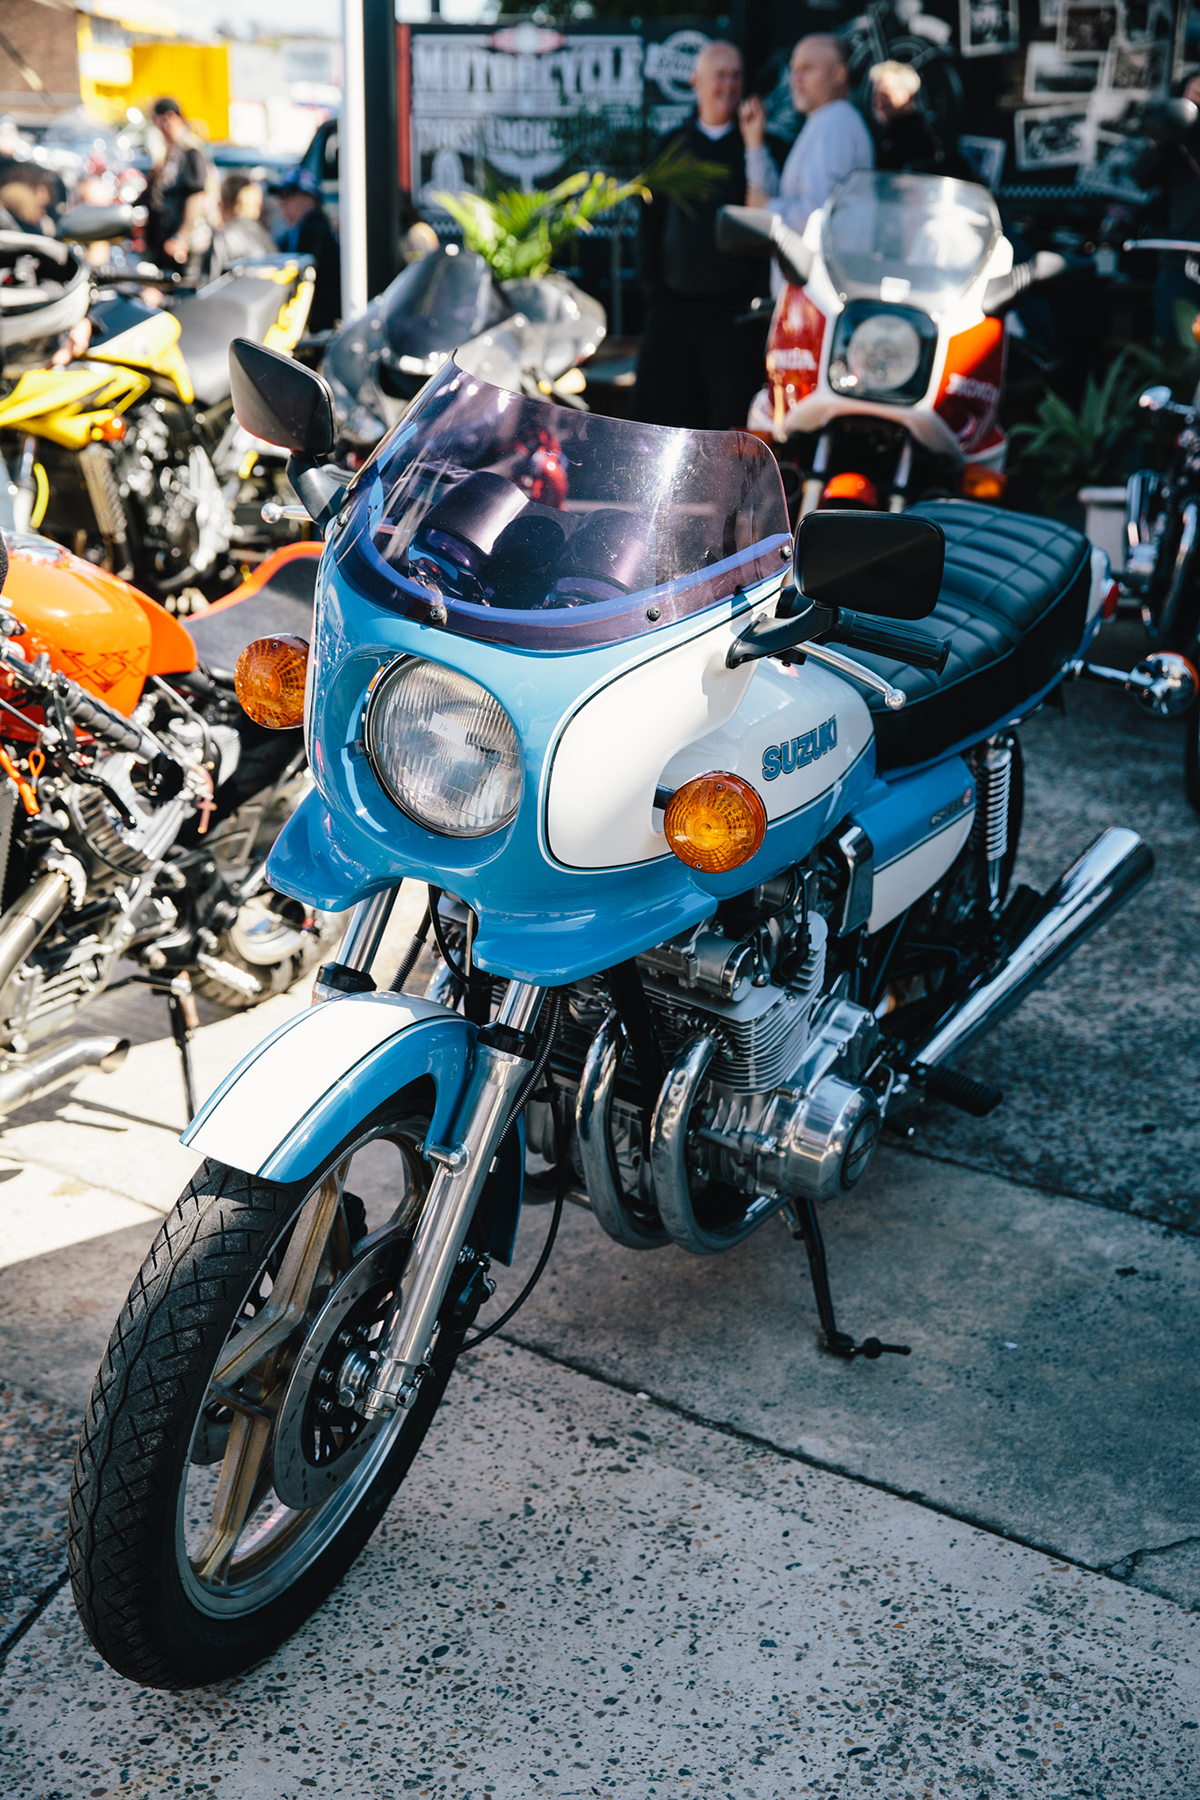 Surfside_Motorcycle_Japanese_8380